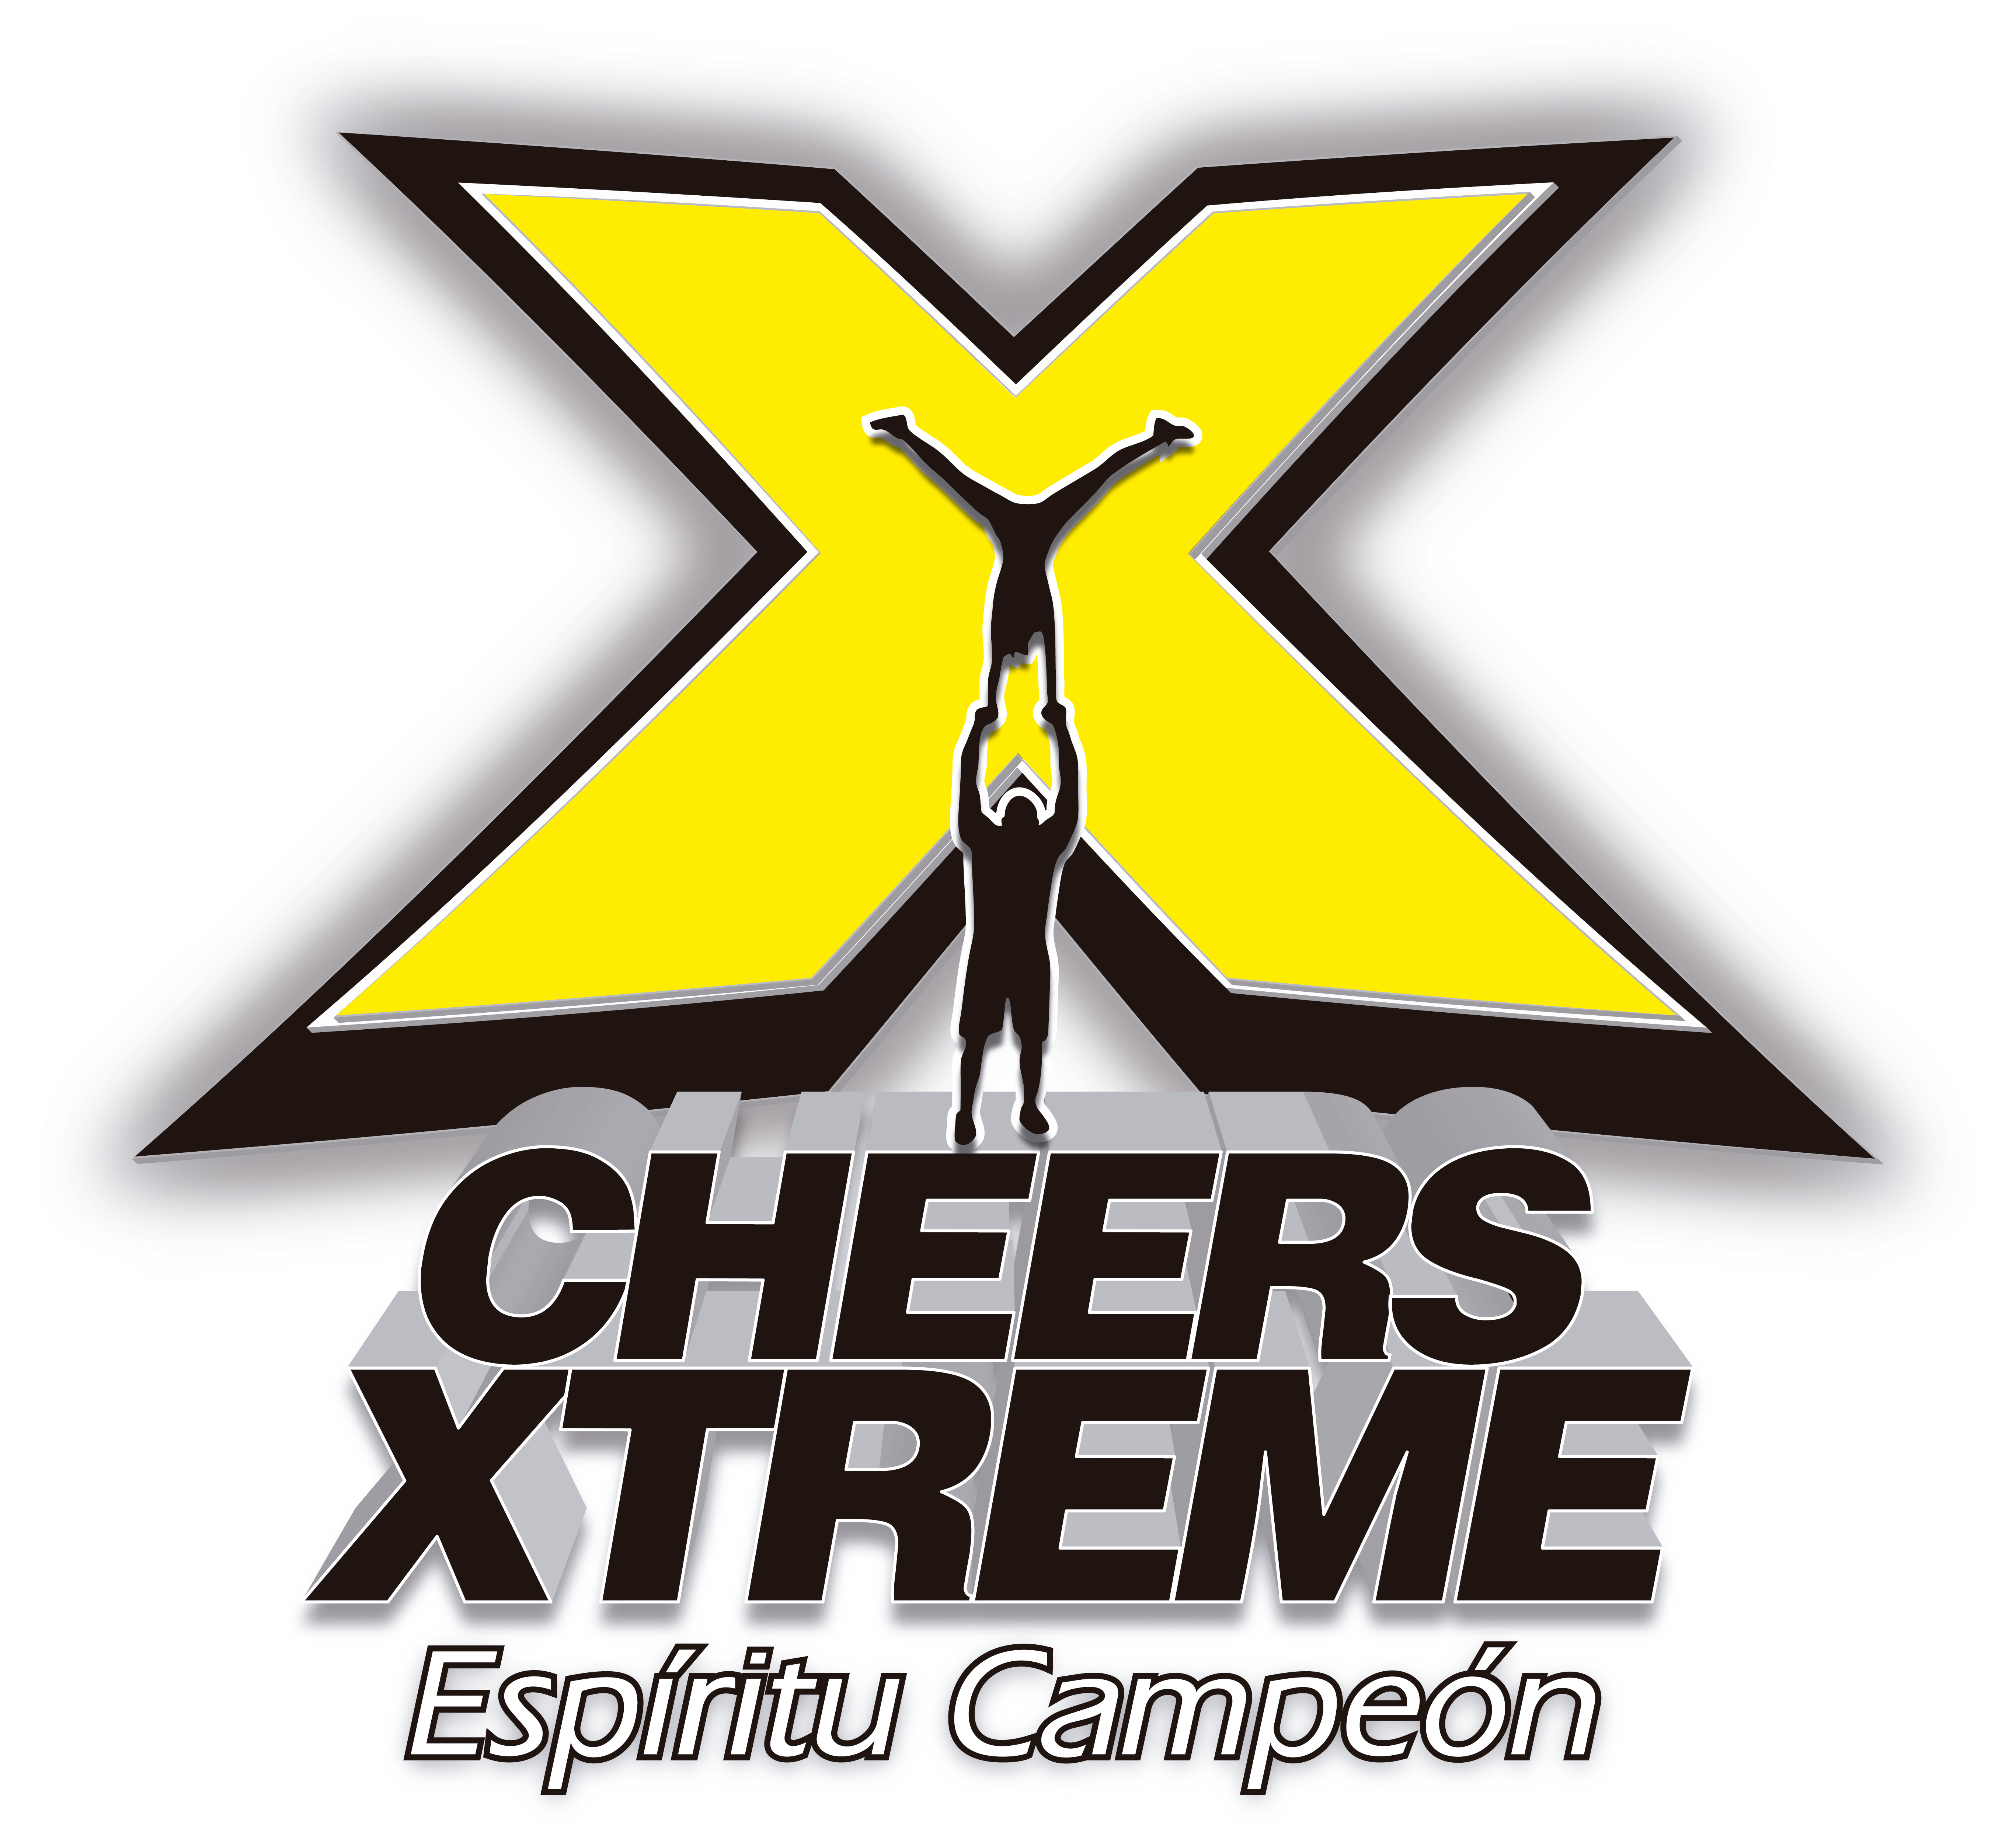 Cheers Xtreme Colombia